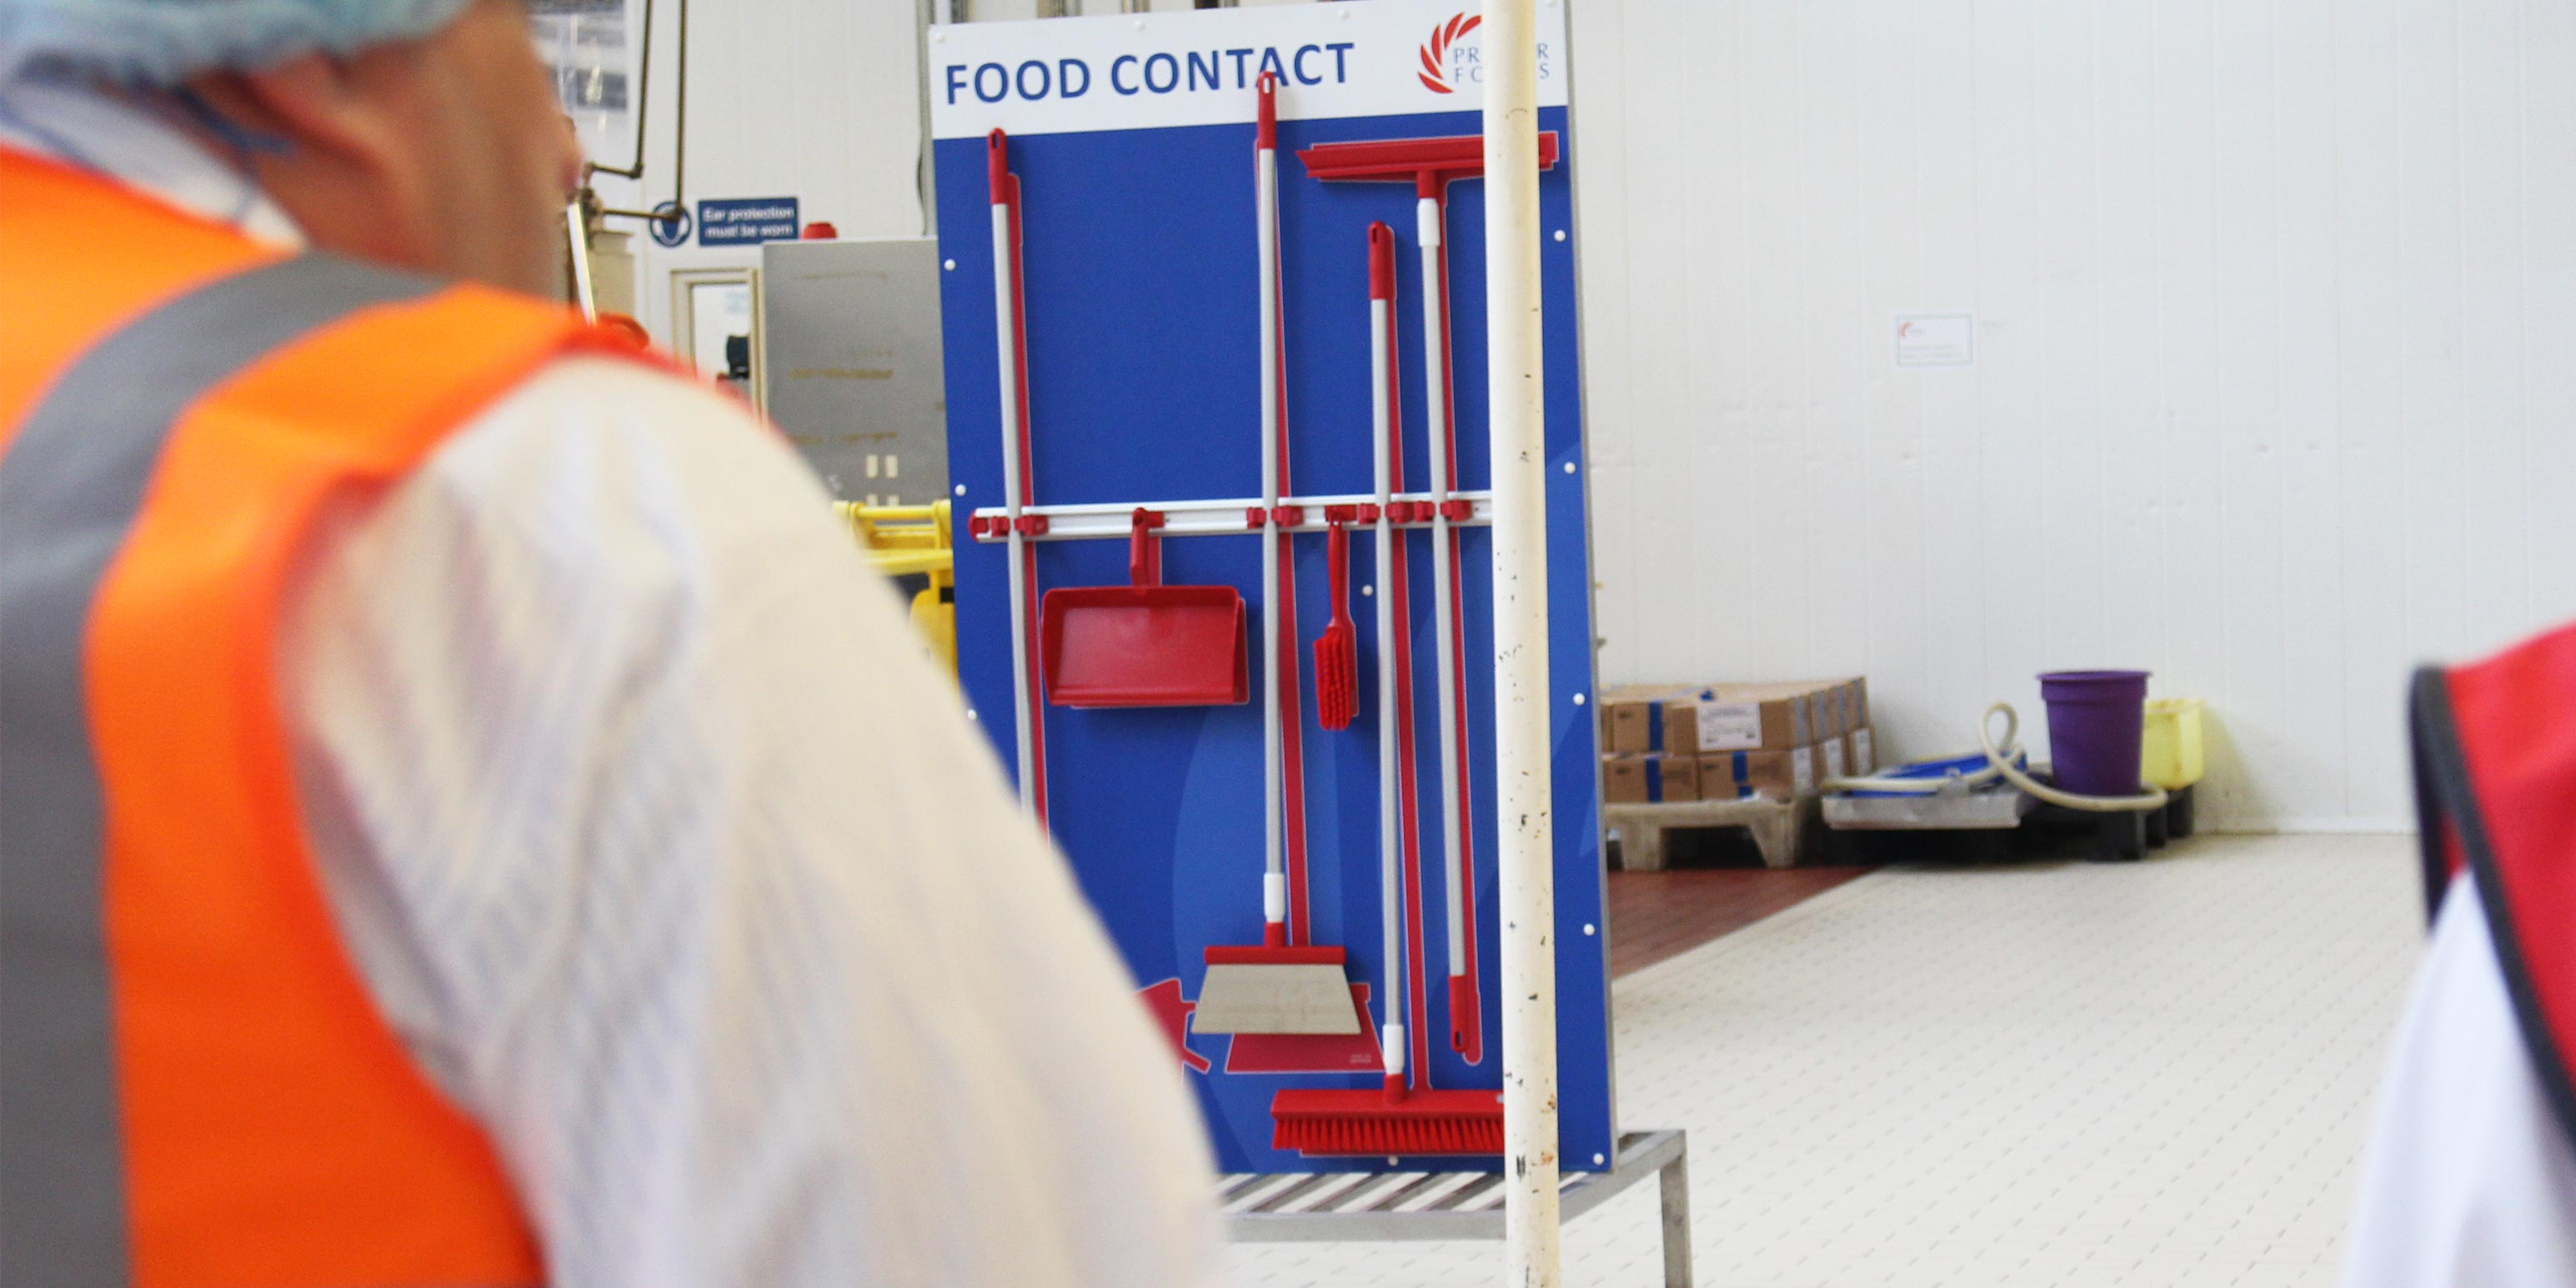 Premier Foods - Cleaning Stations - 5S Cleaning Station - Visual Management Examples - Clarity Visual Management